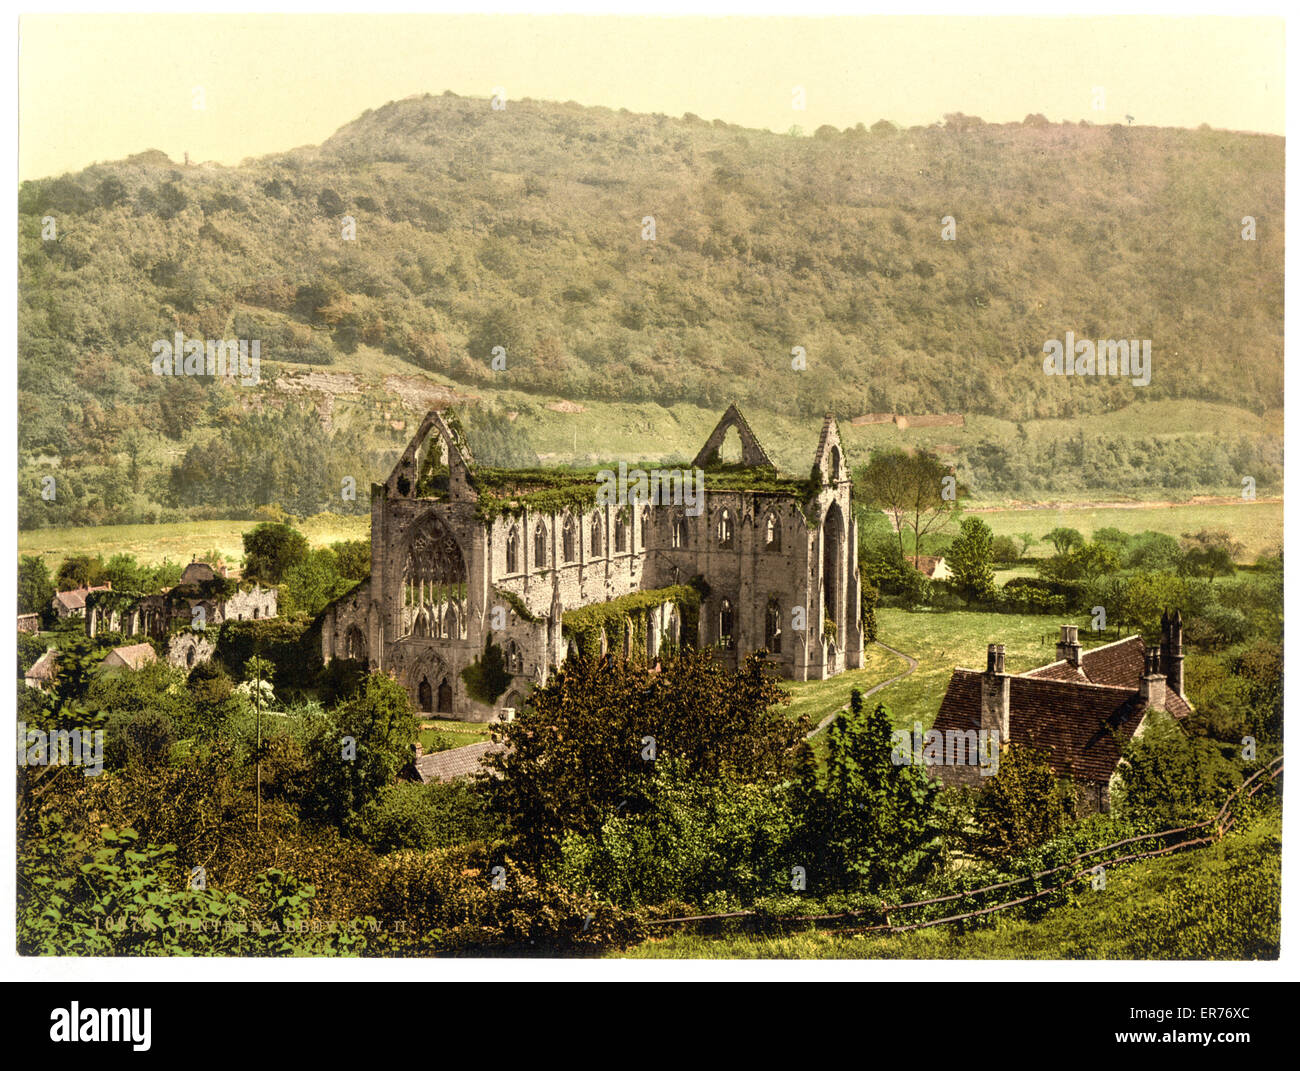 Abbey S. W., II., Tintern, England. Date between ca. 1890 and ca. 1900. - Stock Image